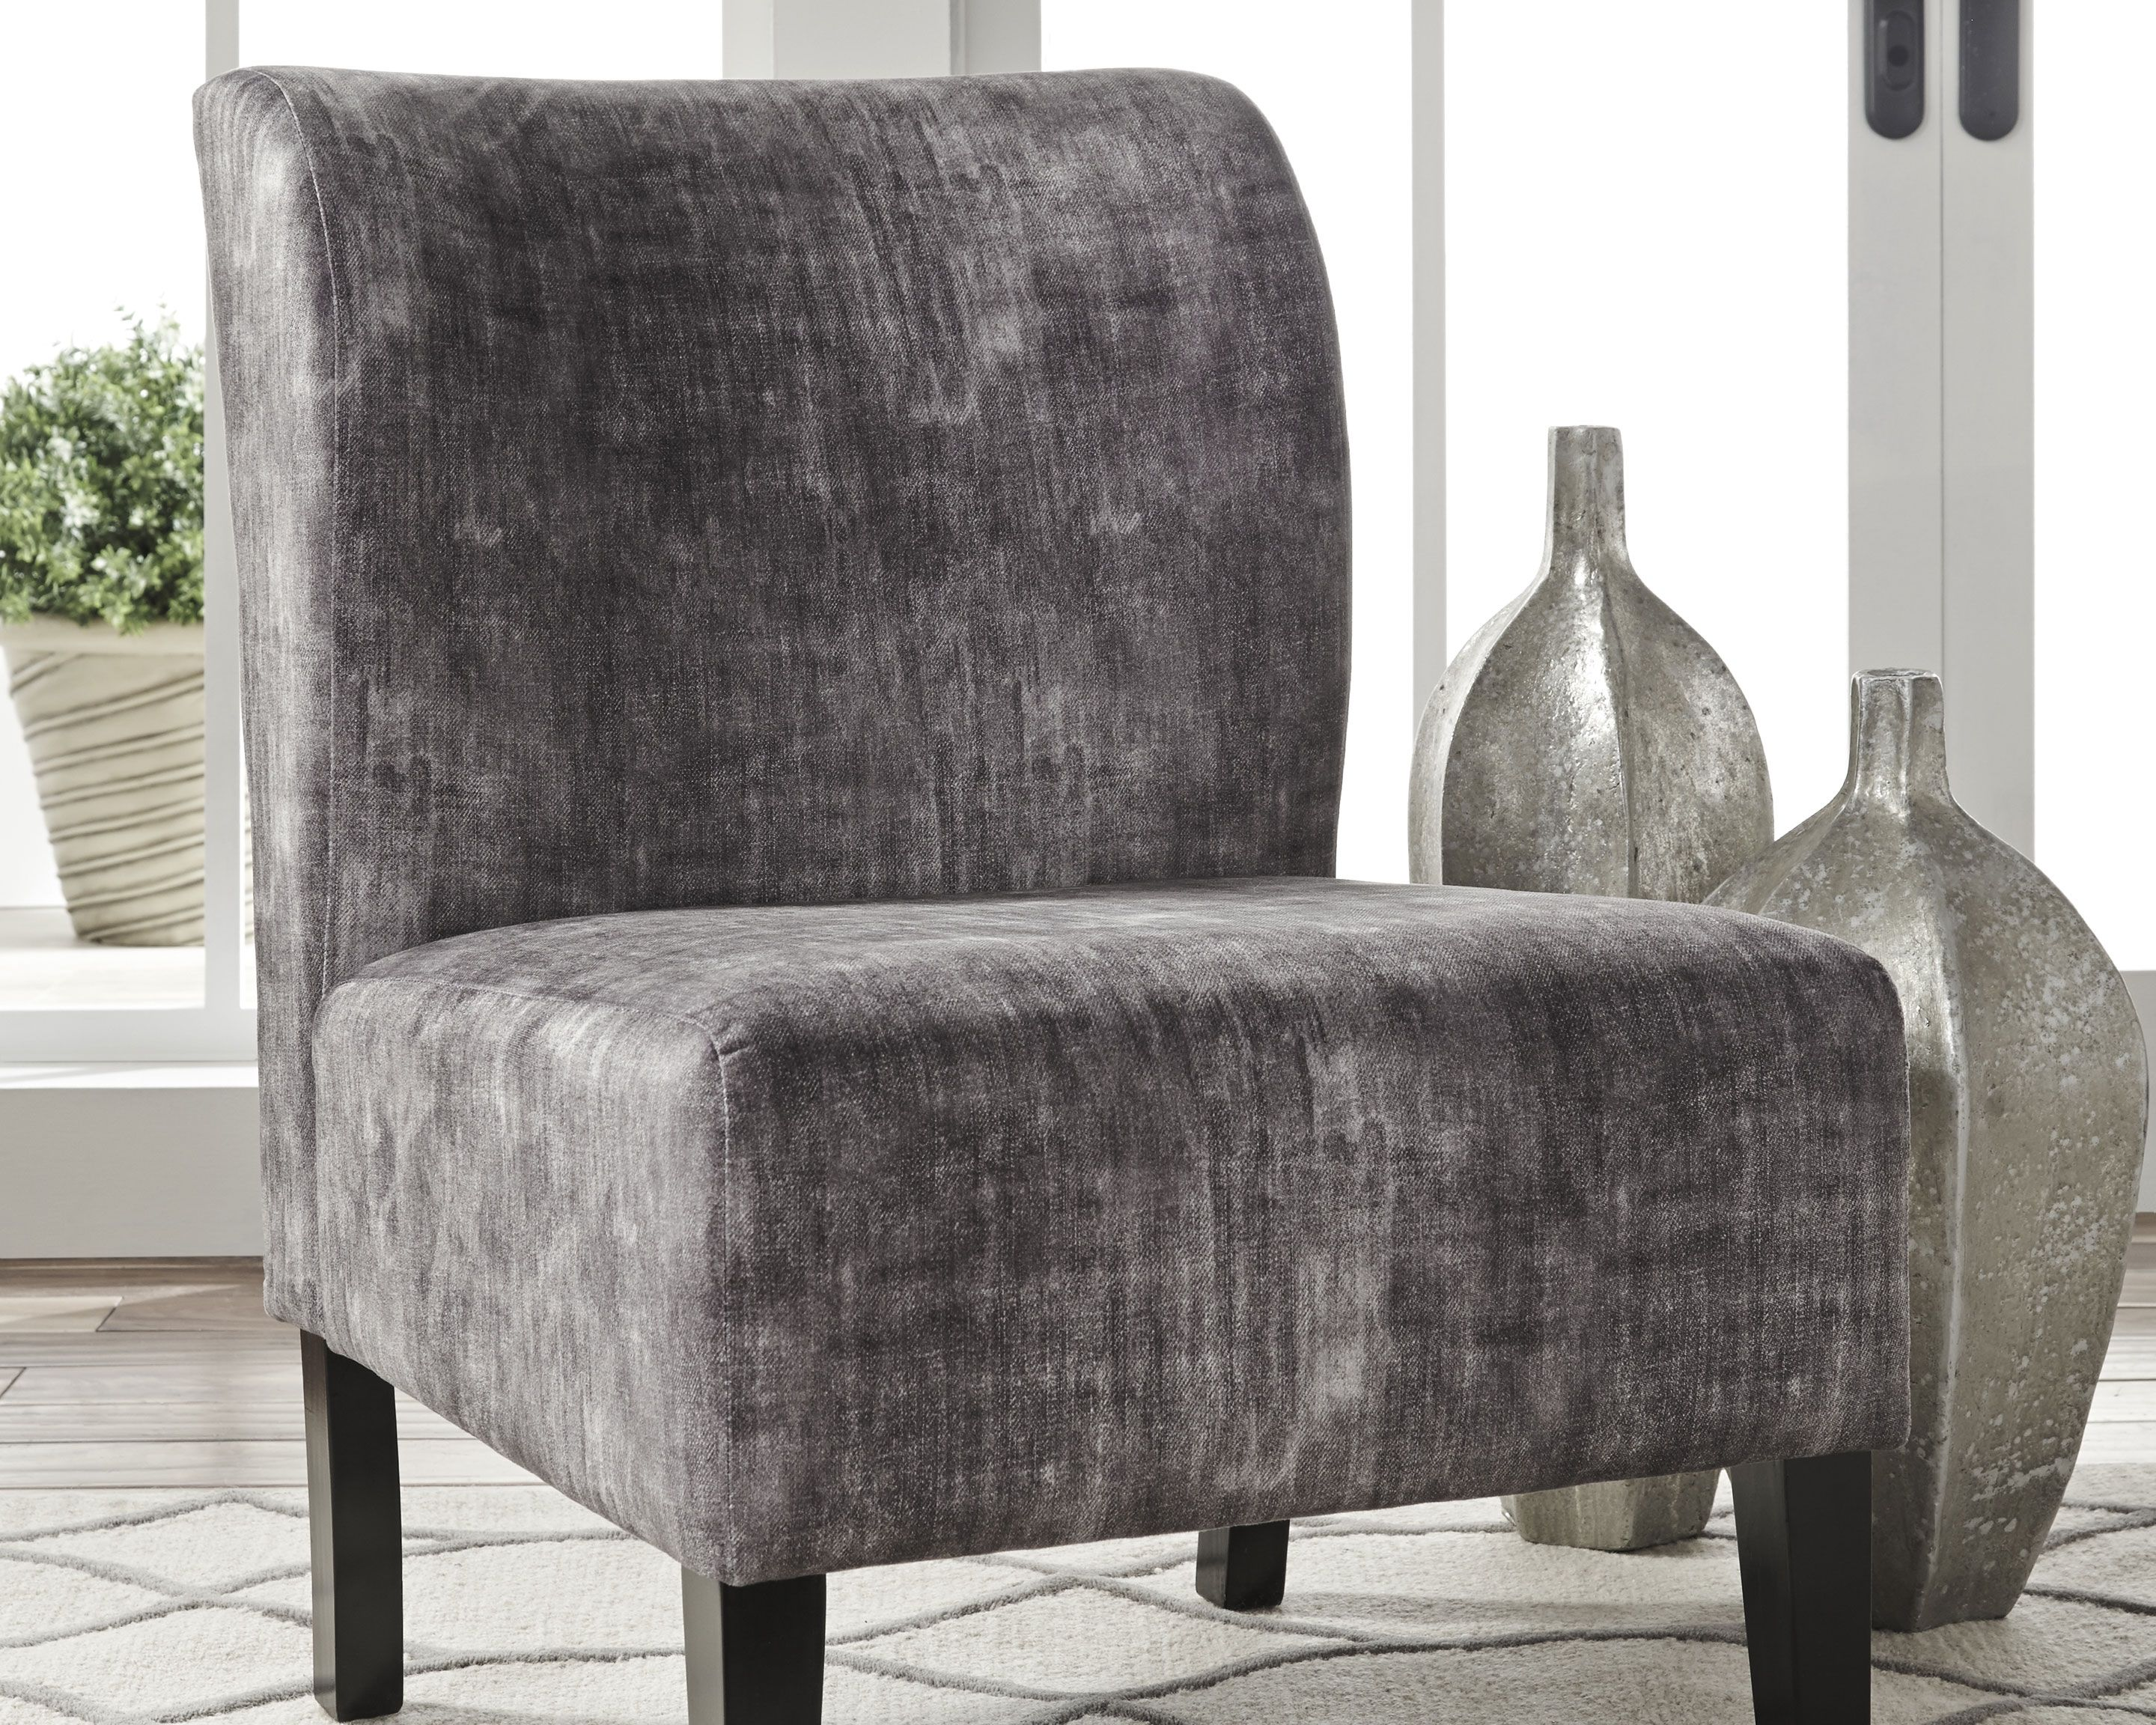 Triptis Accent Chair Charcoal Accent Chairs Living Room Chairs